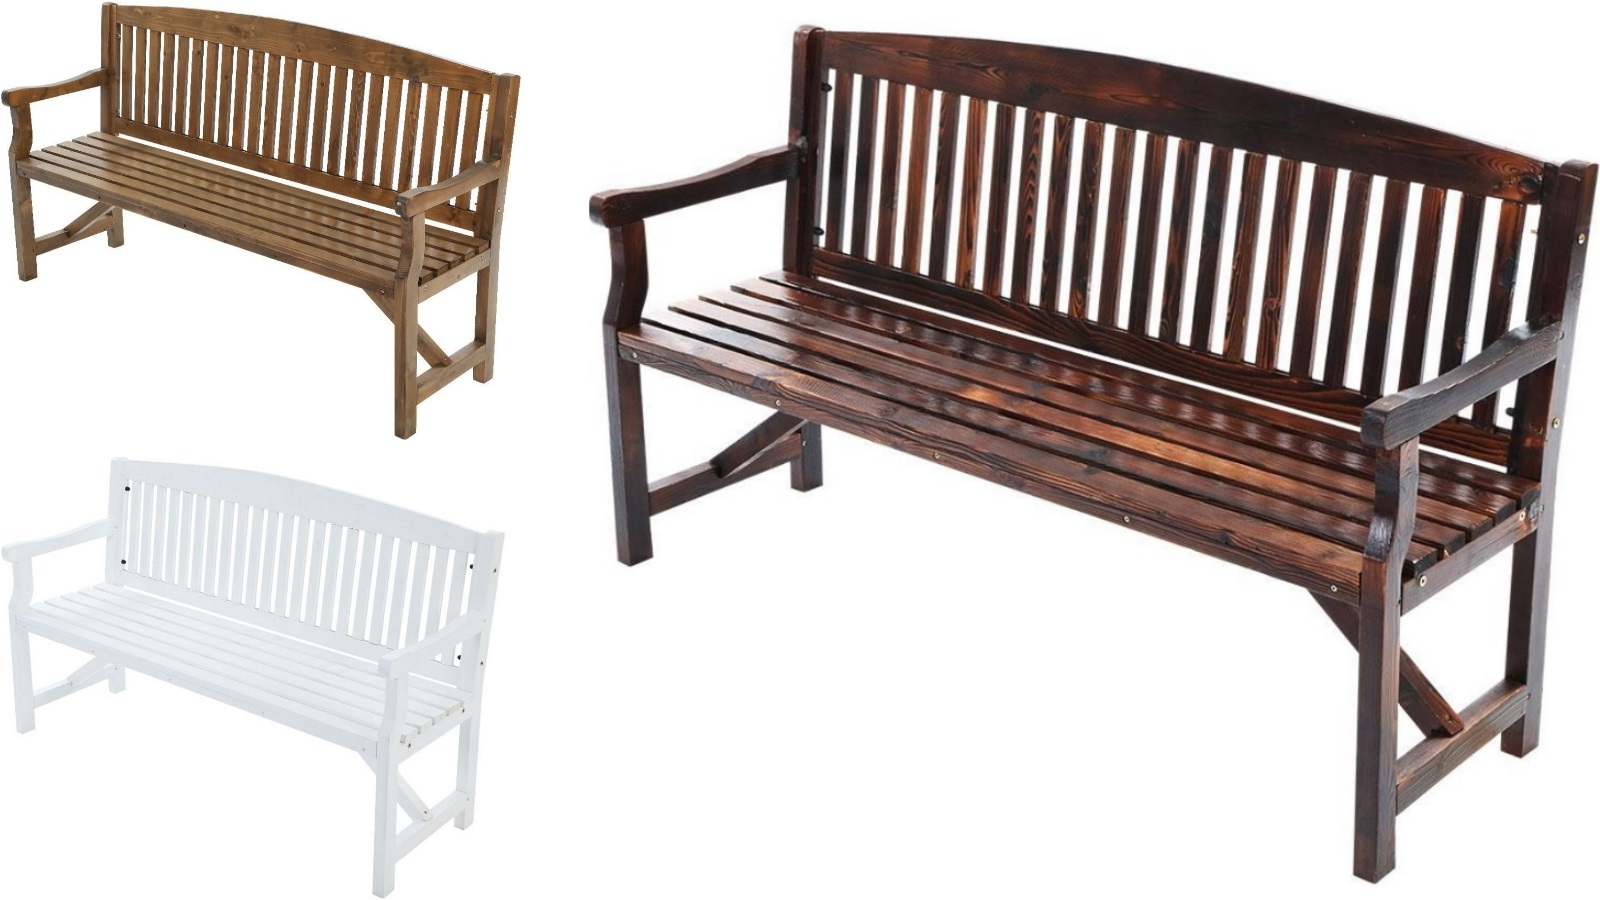 Well Known Manchester Wooden Garden Benches Inside Gardeon 3 Seater Wooden Garden Bench Chair (View 8 of 30)